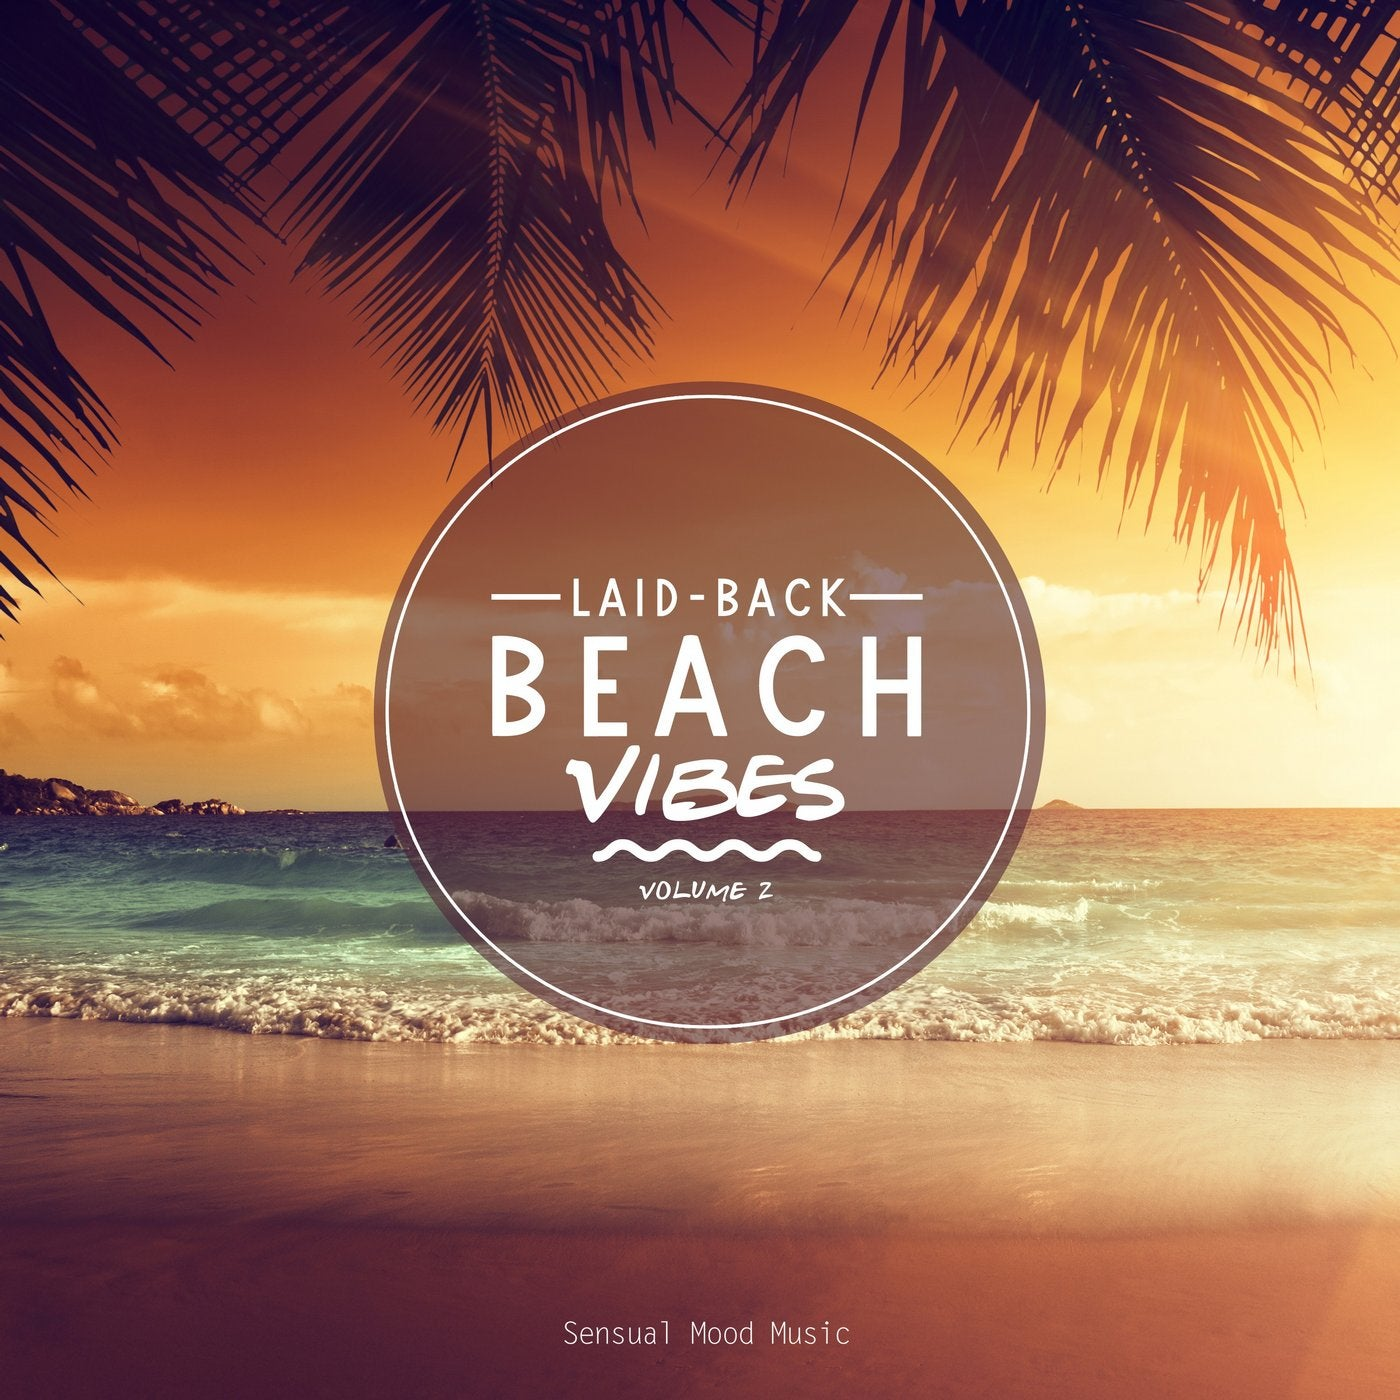 Laid Back Beach Vibes, Vol. 12 from Sensual Mood Music on Beatport